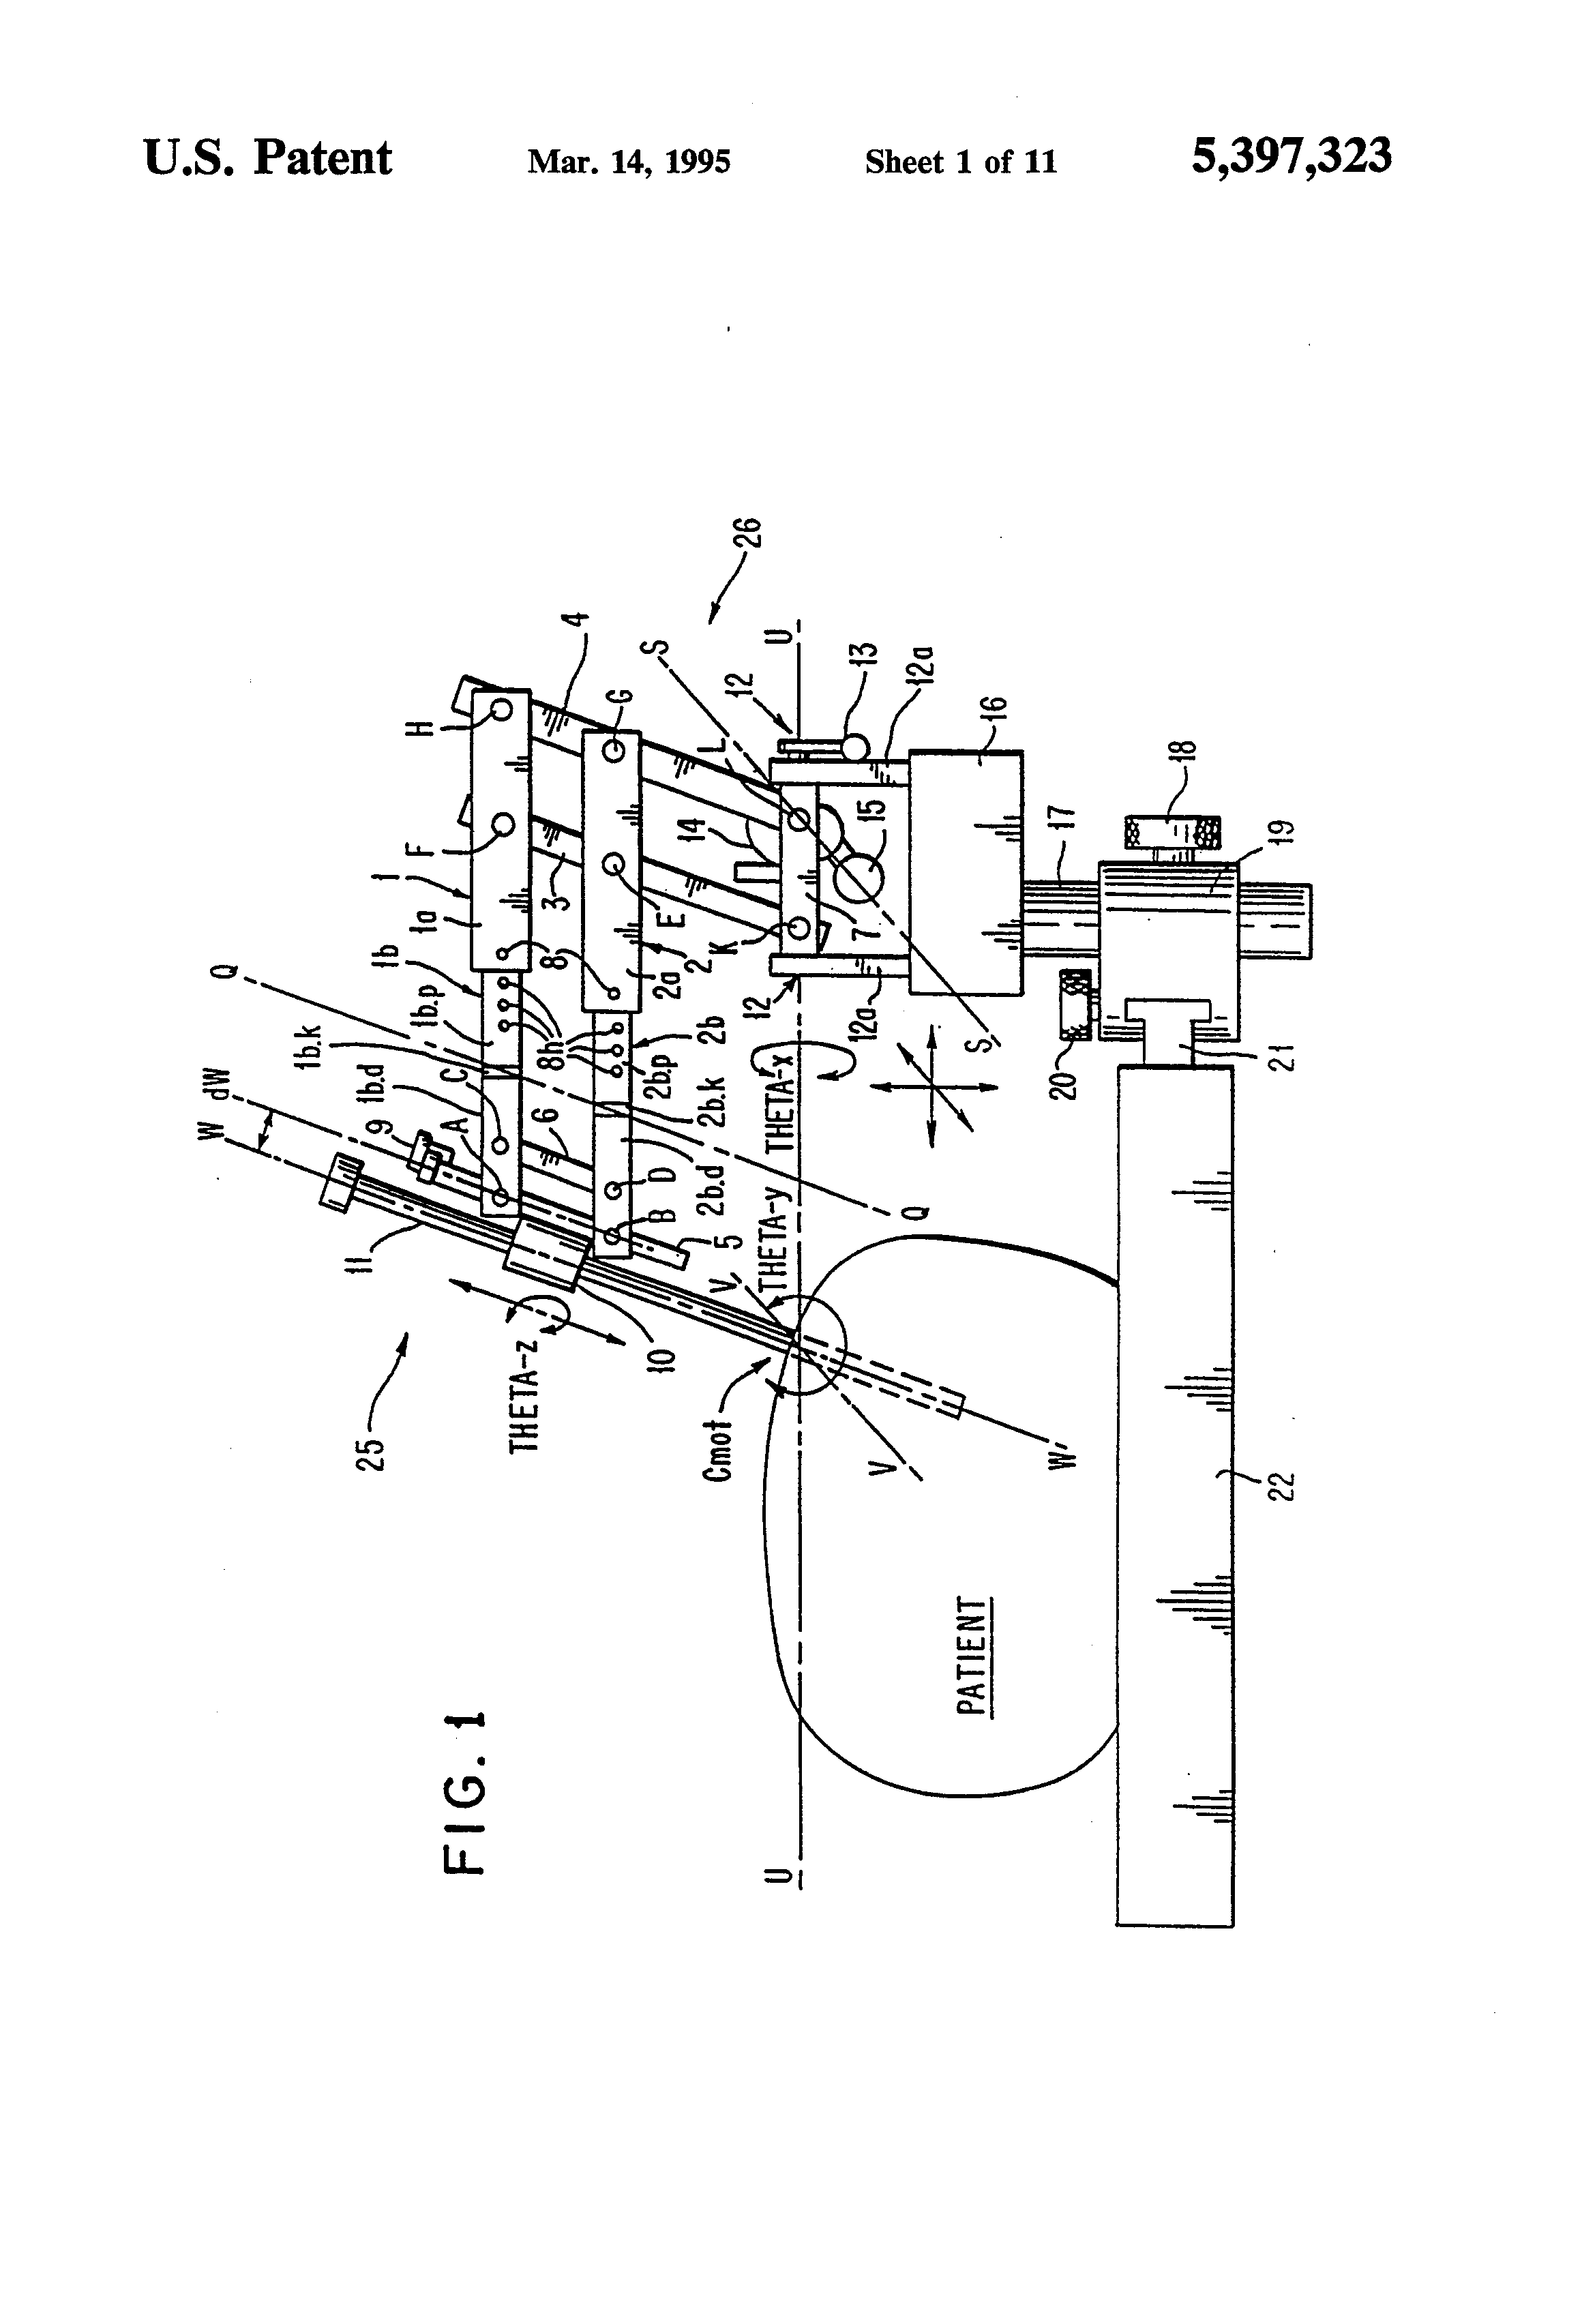 1997 Buick Lesabre Horn Relay Location 1994 Wiring Diagram Radio Patent Drawing